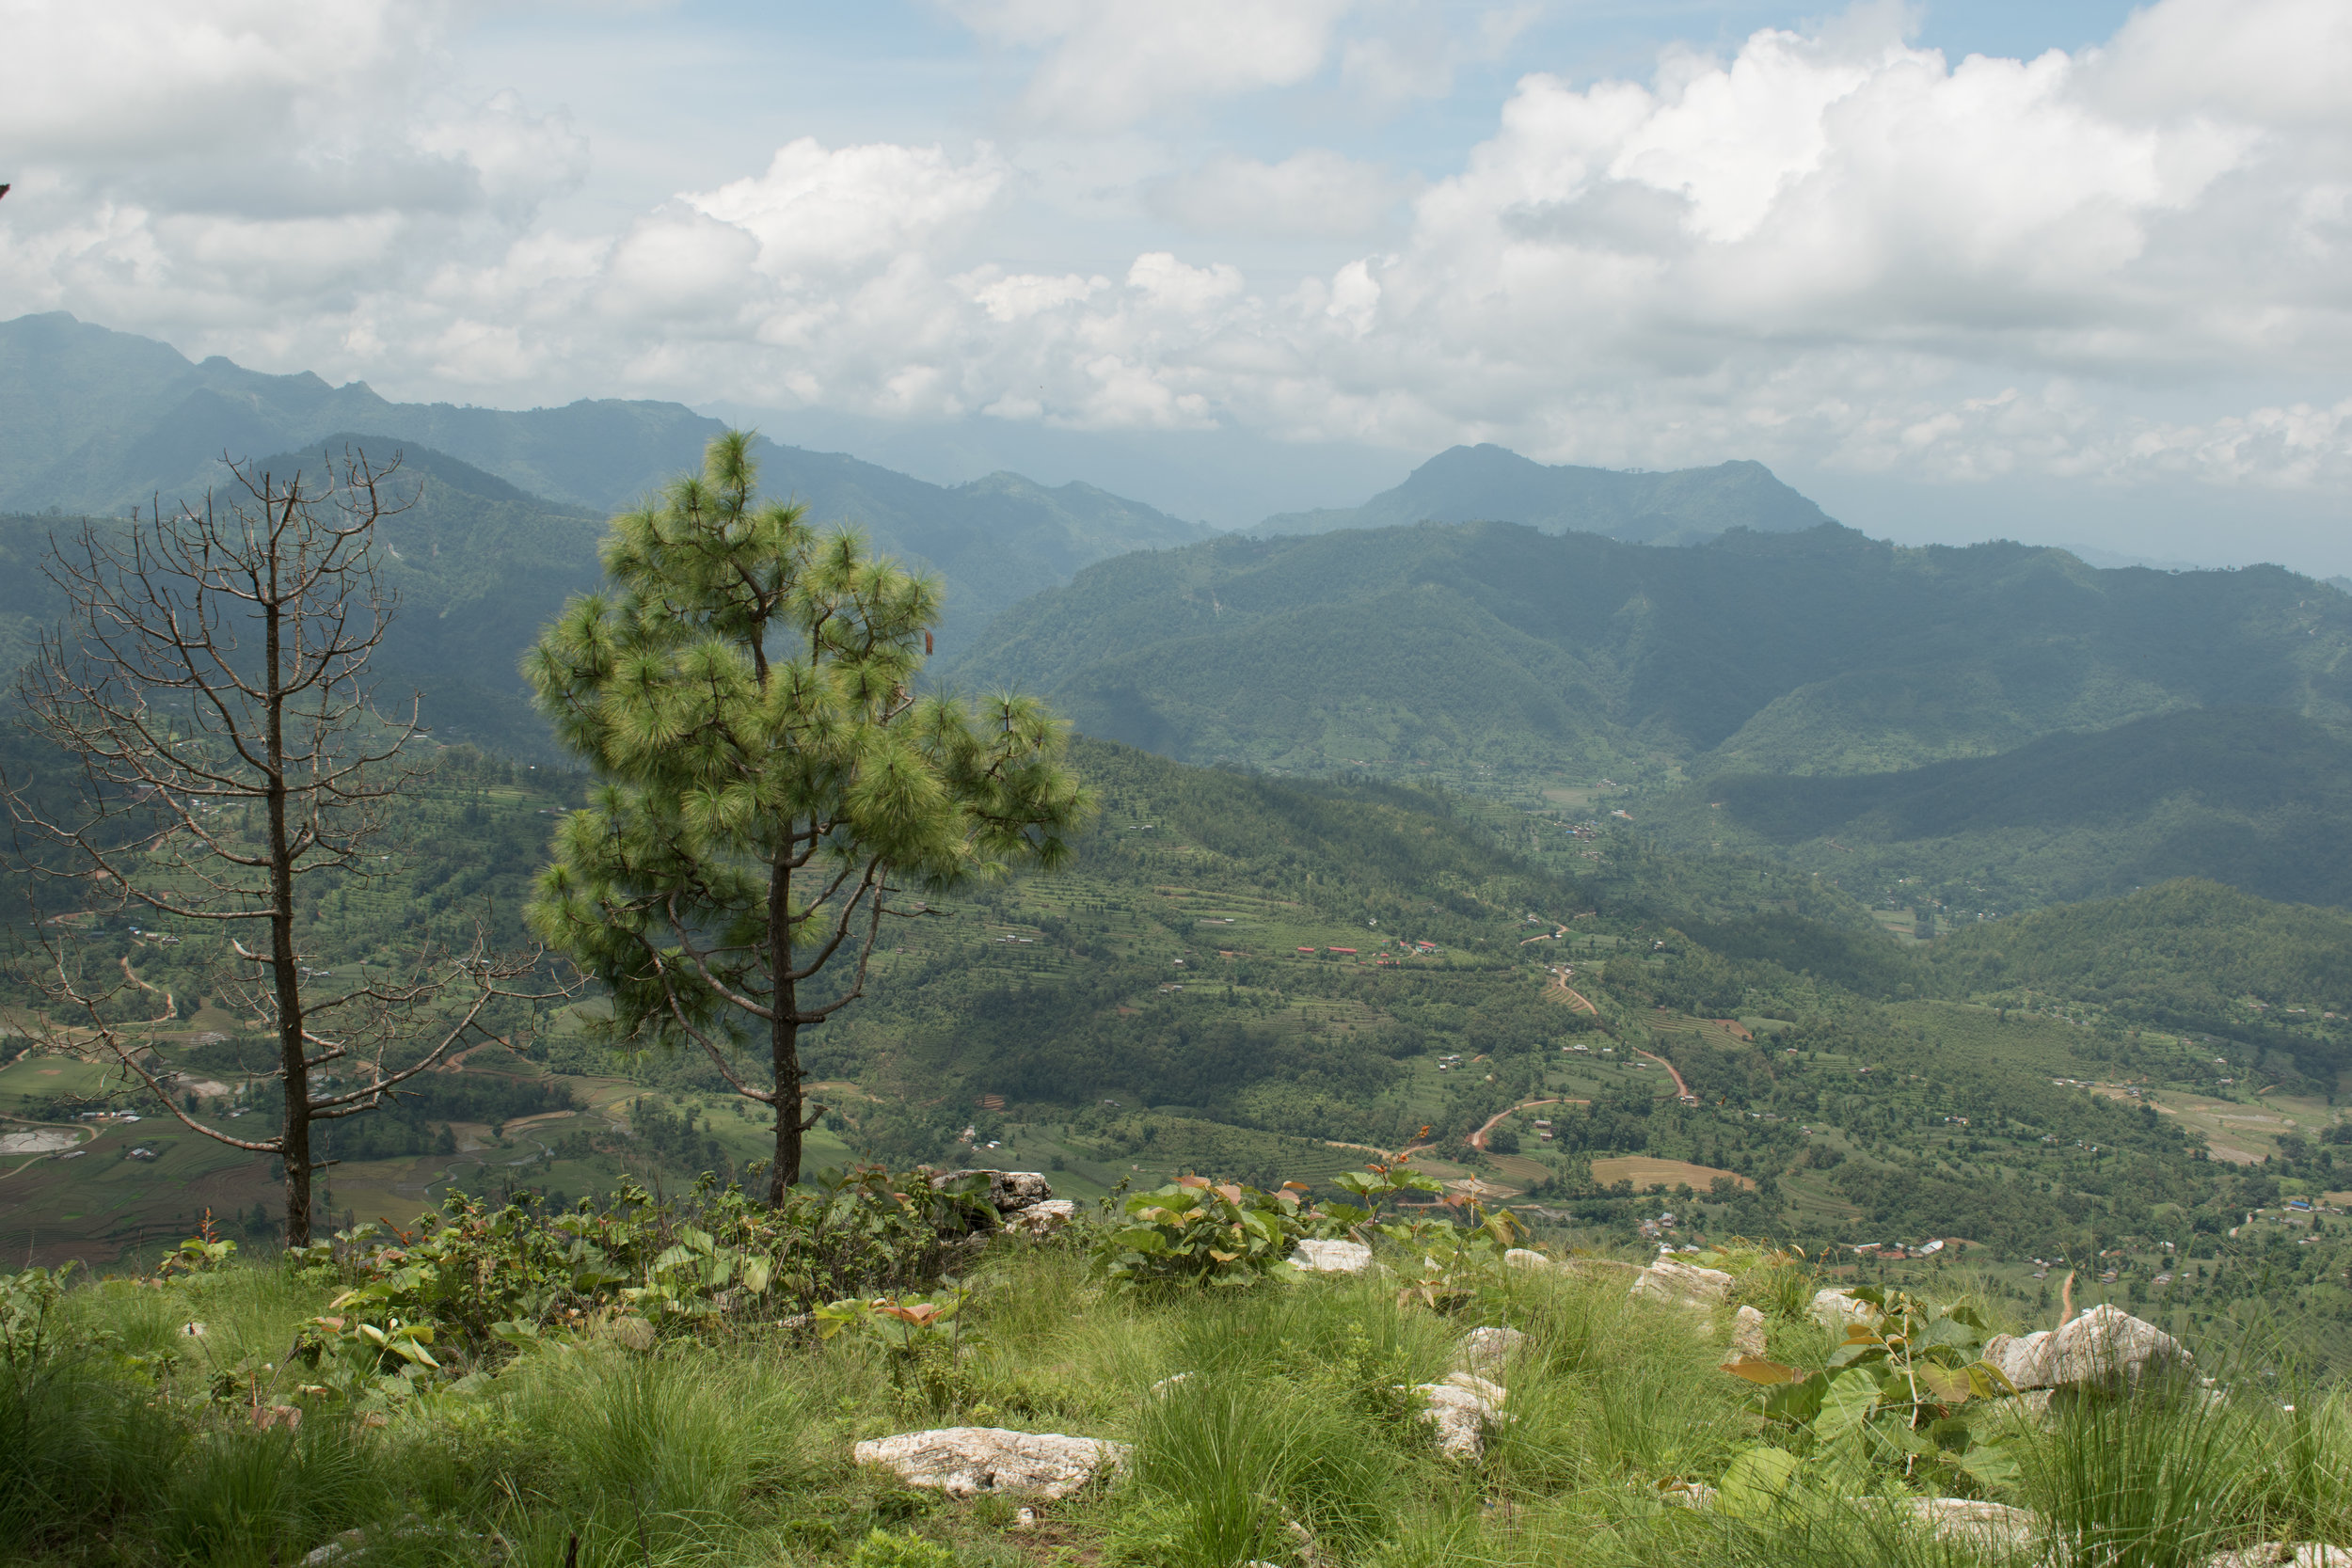 The Top Of The Viewpoint in Bandipur, Nepal